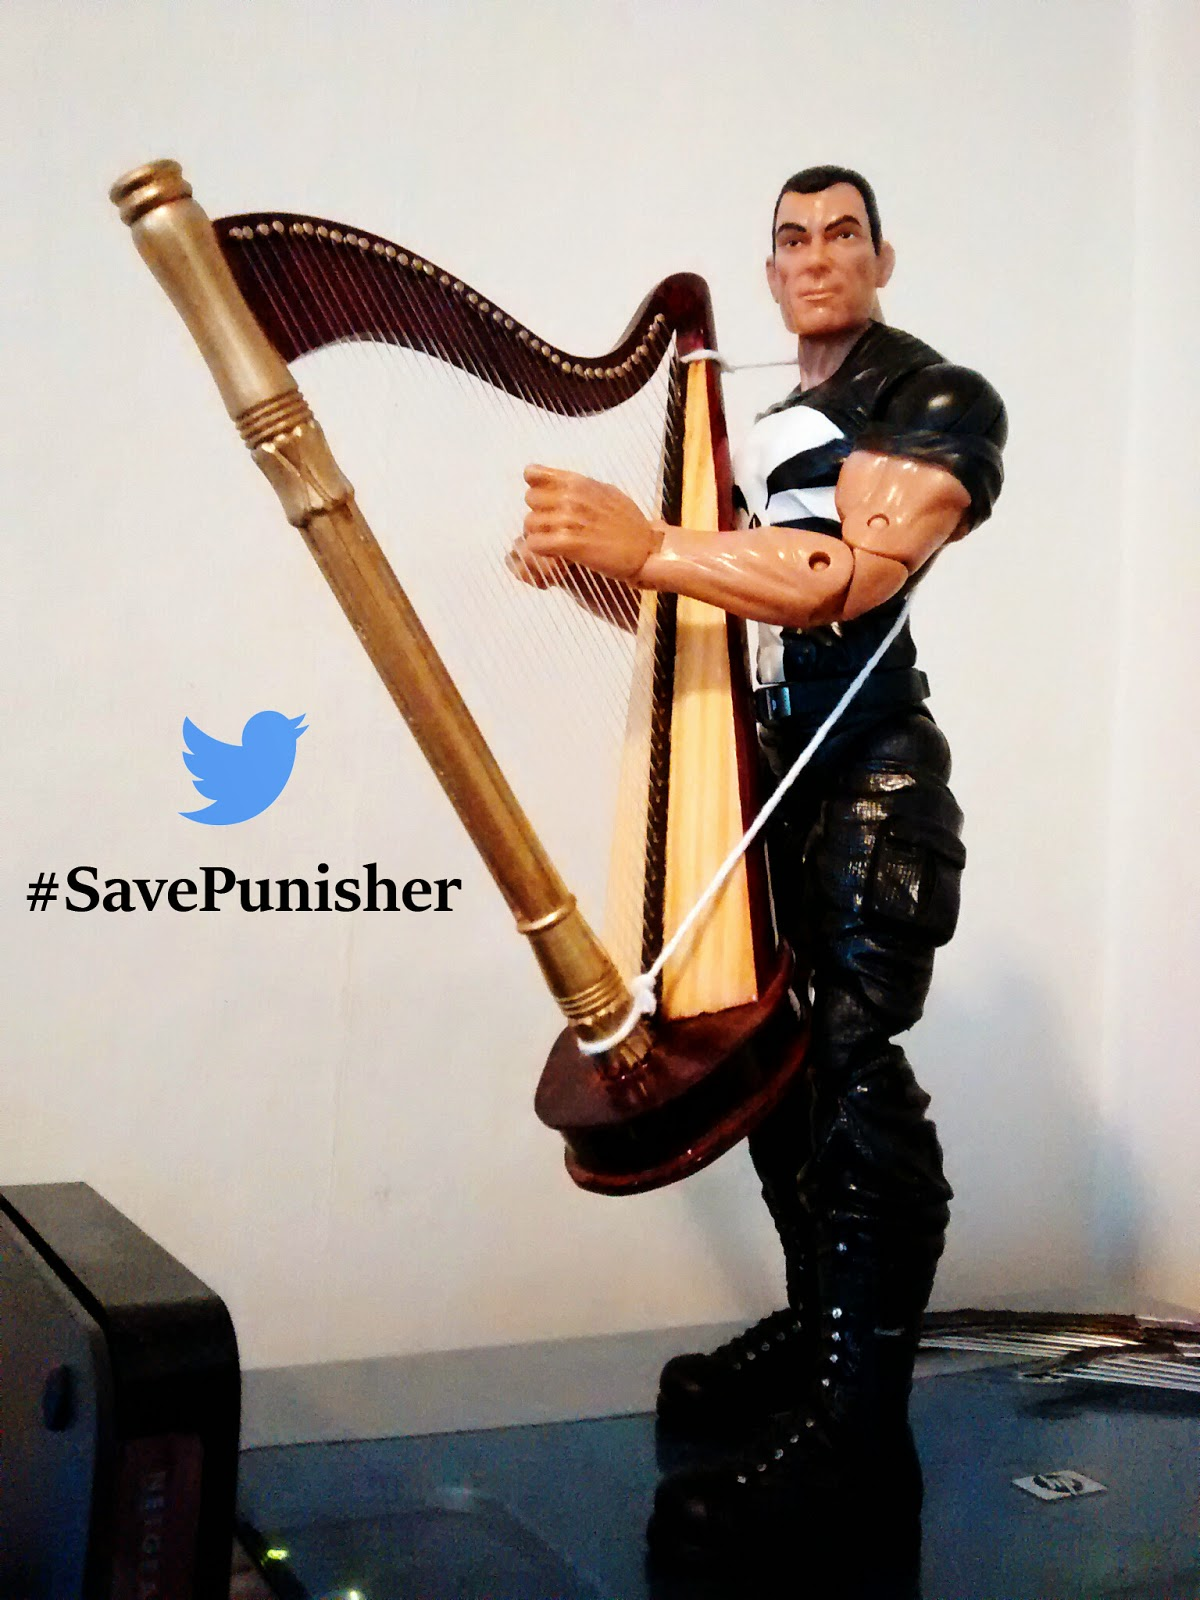 #SavePunisher